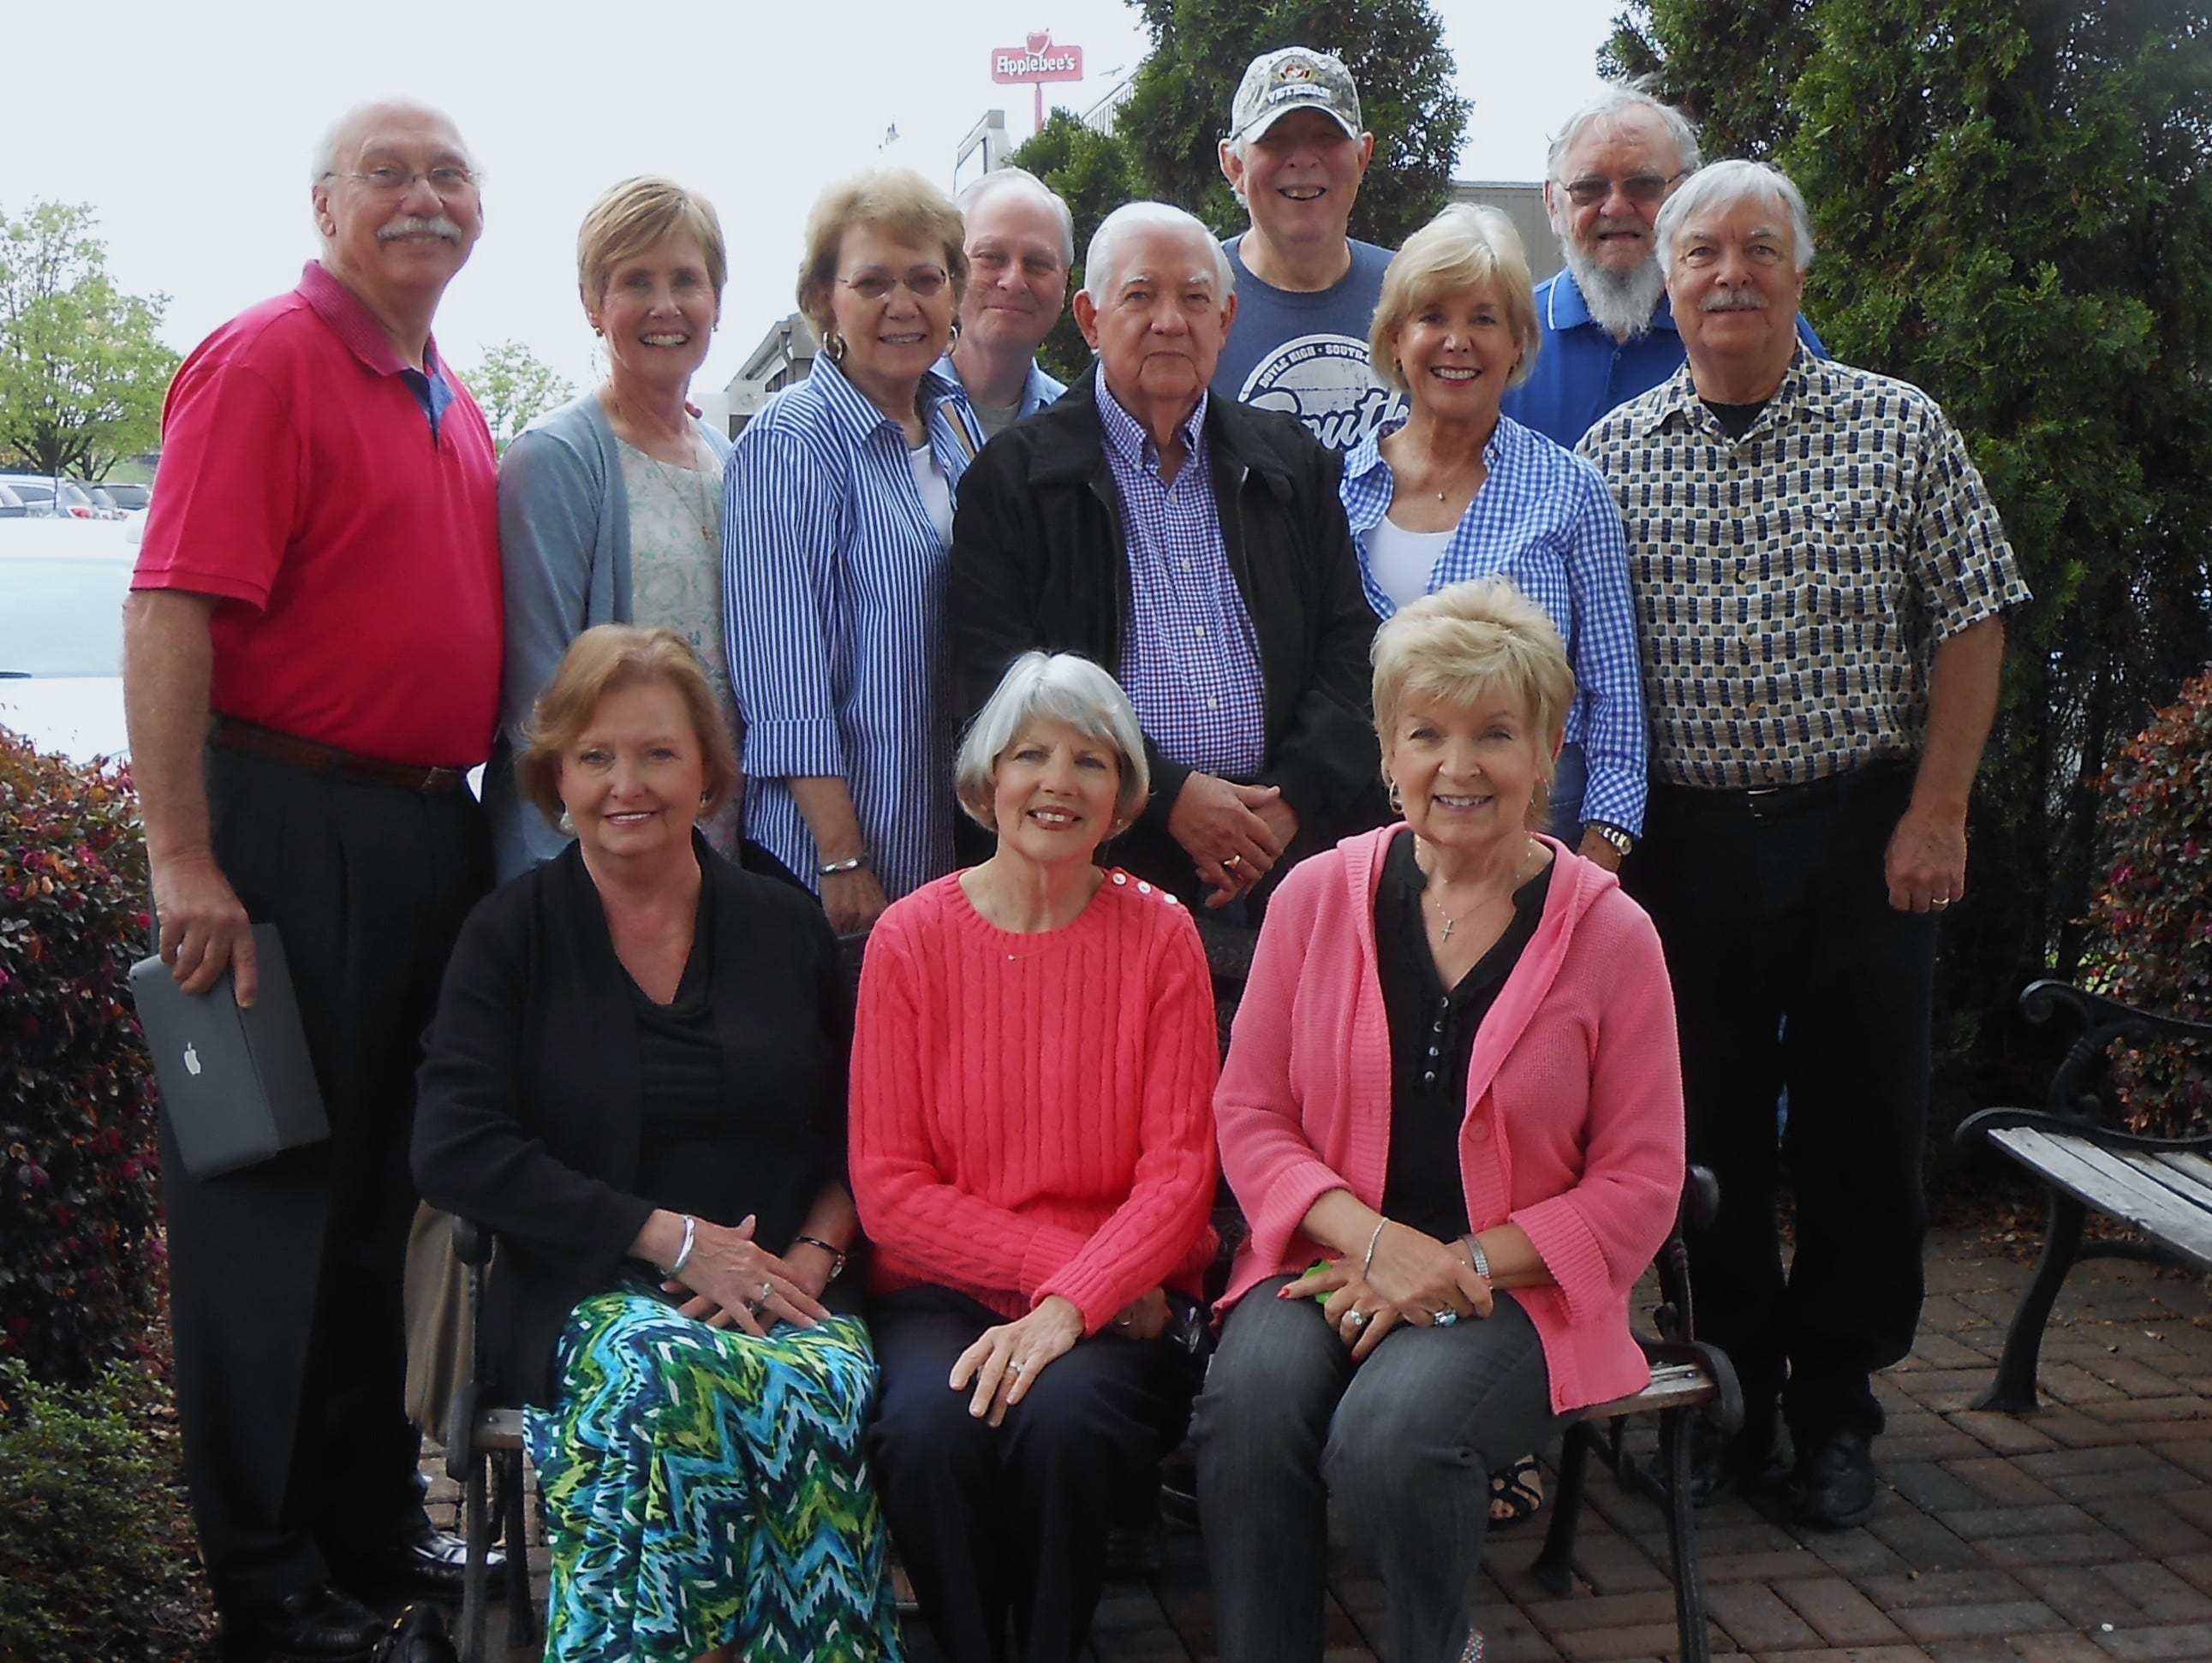 Contributed Photo Members of the South High School class of 1963 from Atlanta and Knoxville met in Chattanooga. Ira Gladson, a guidance counselor who worked at South High School in 1963, also attended. Front row from left are Sheila Satterfield Dunson, Paulette Rhea Anderson and Janice Smith Davis. Second row from left are Gary Anderson, Sharen Glass Brown, Lynda Dunn, Gladson, Brenda Flowers Ooten and Carl Hatfield. Third row from left are Don Roland, Dave Alexander and Bobby Smith. 2015